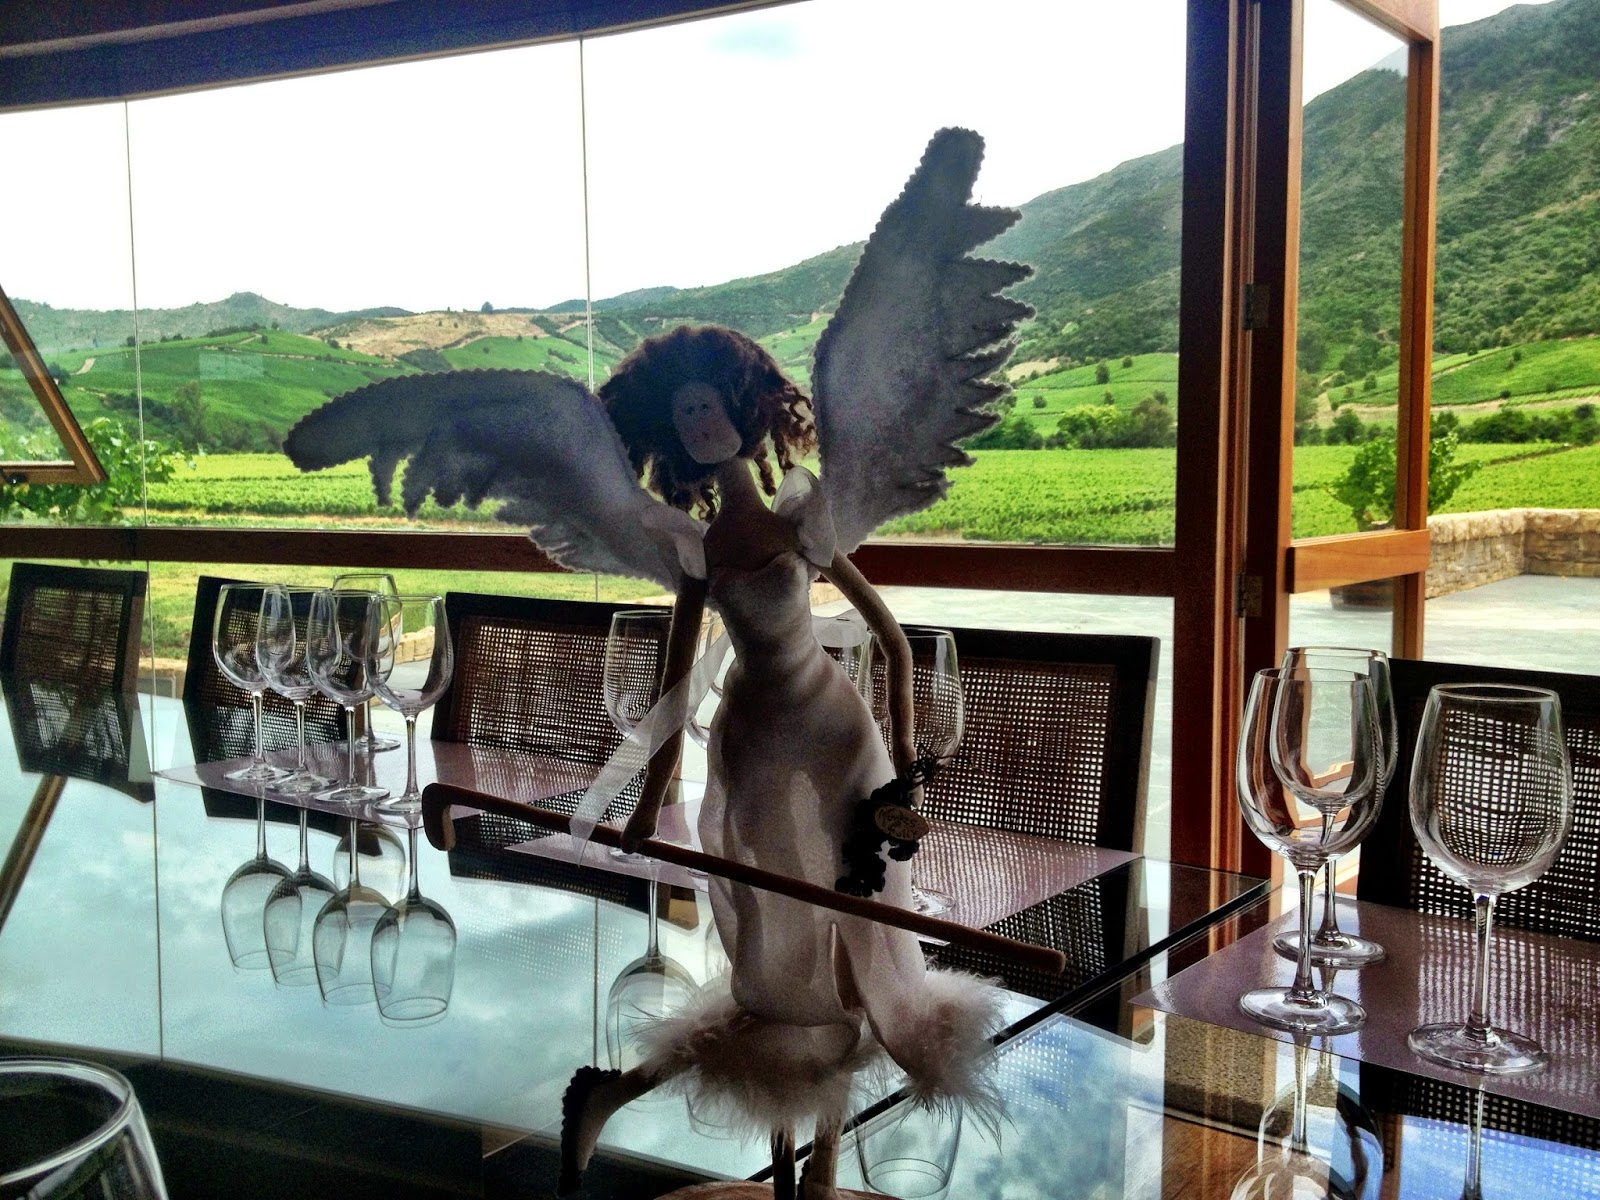 Montes winery view and angel